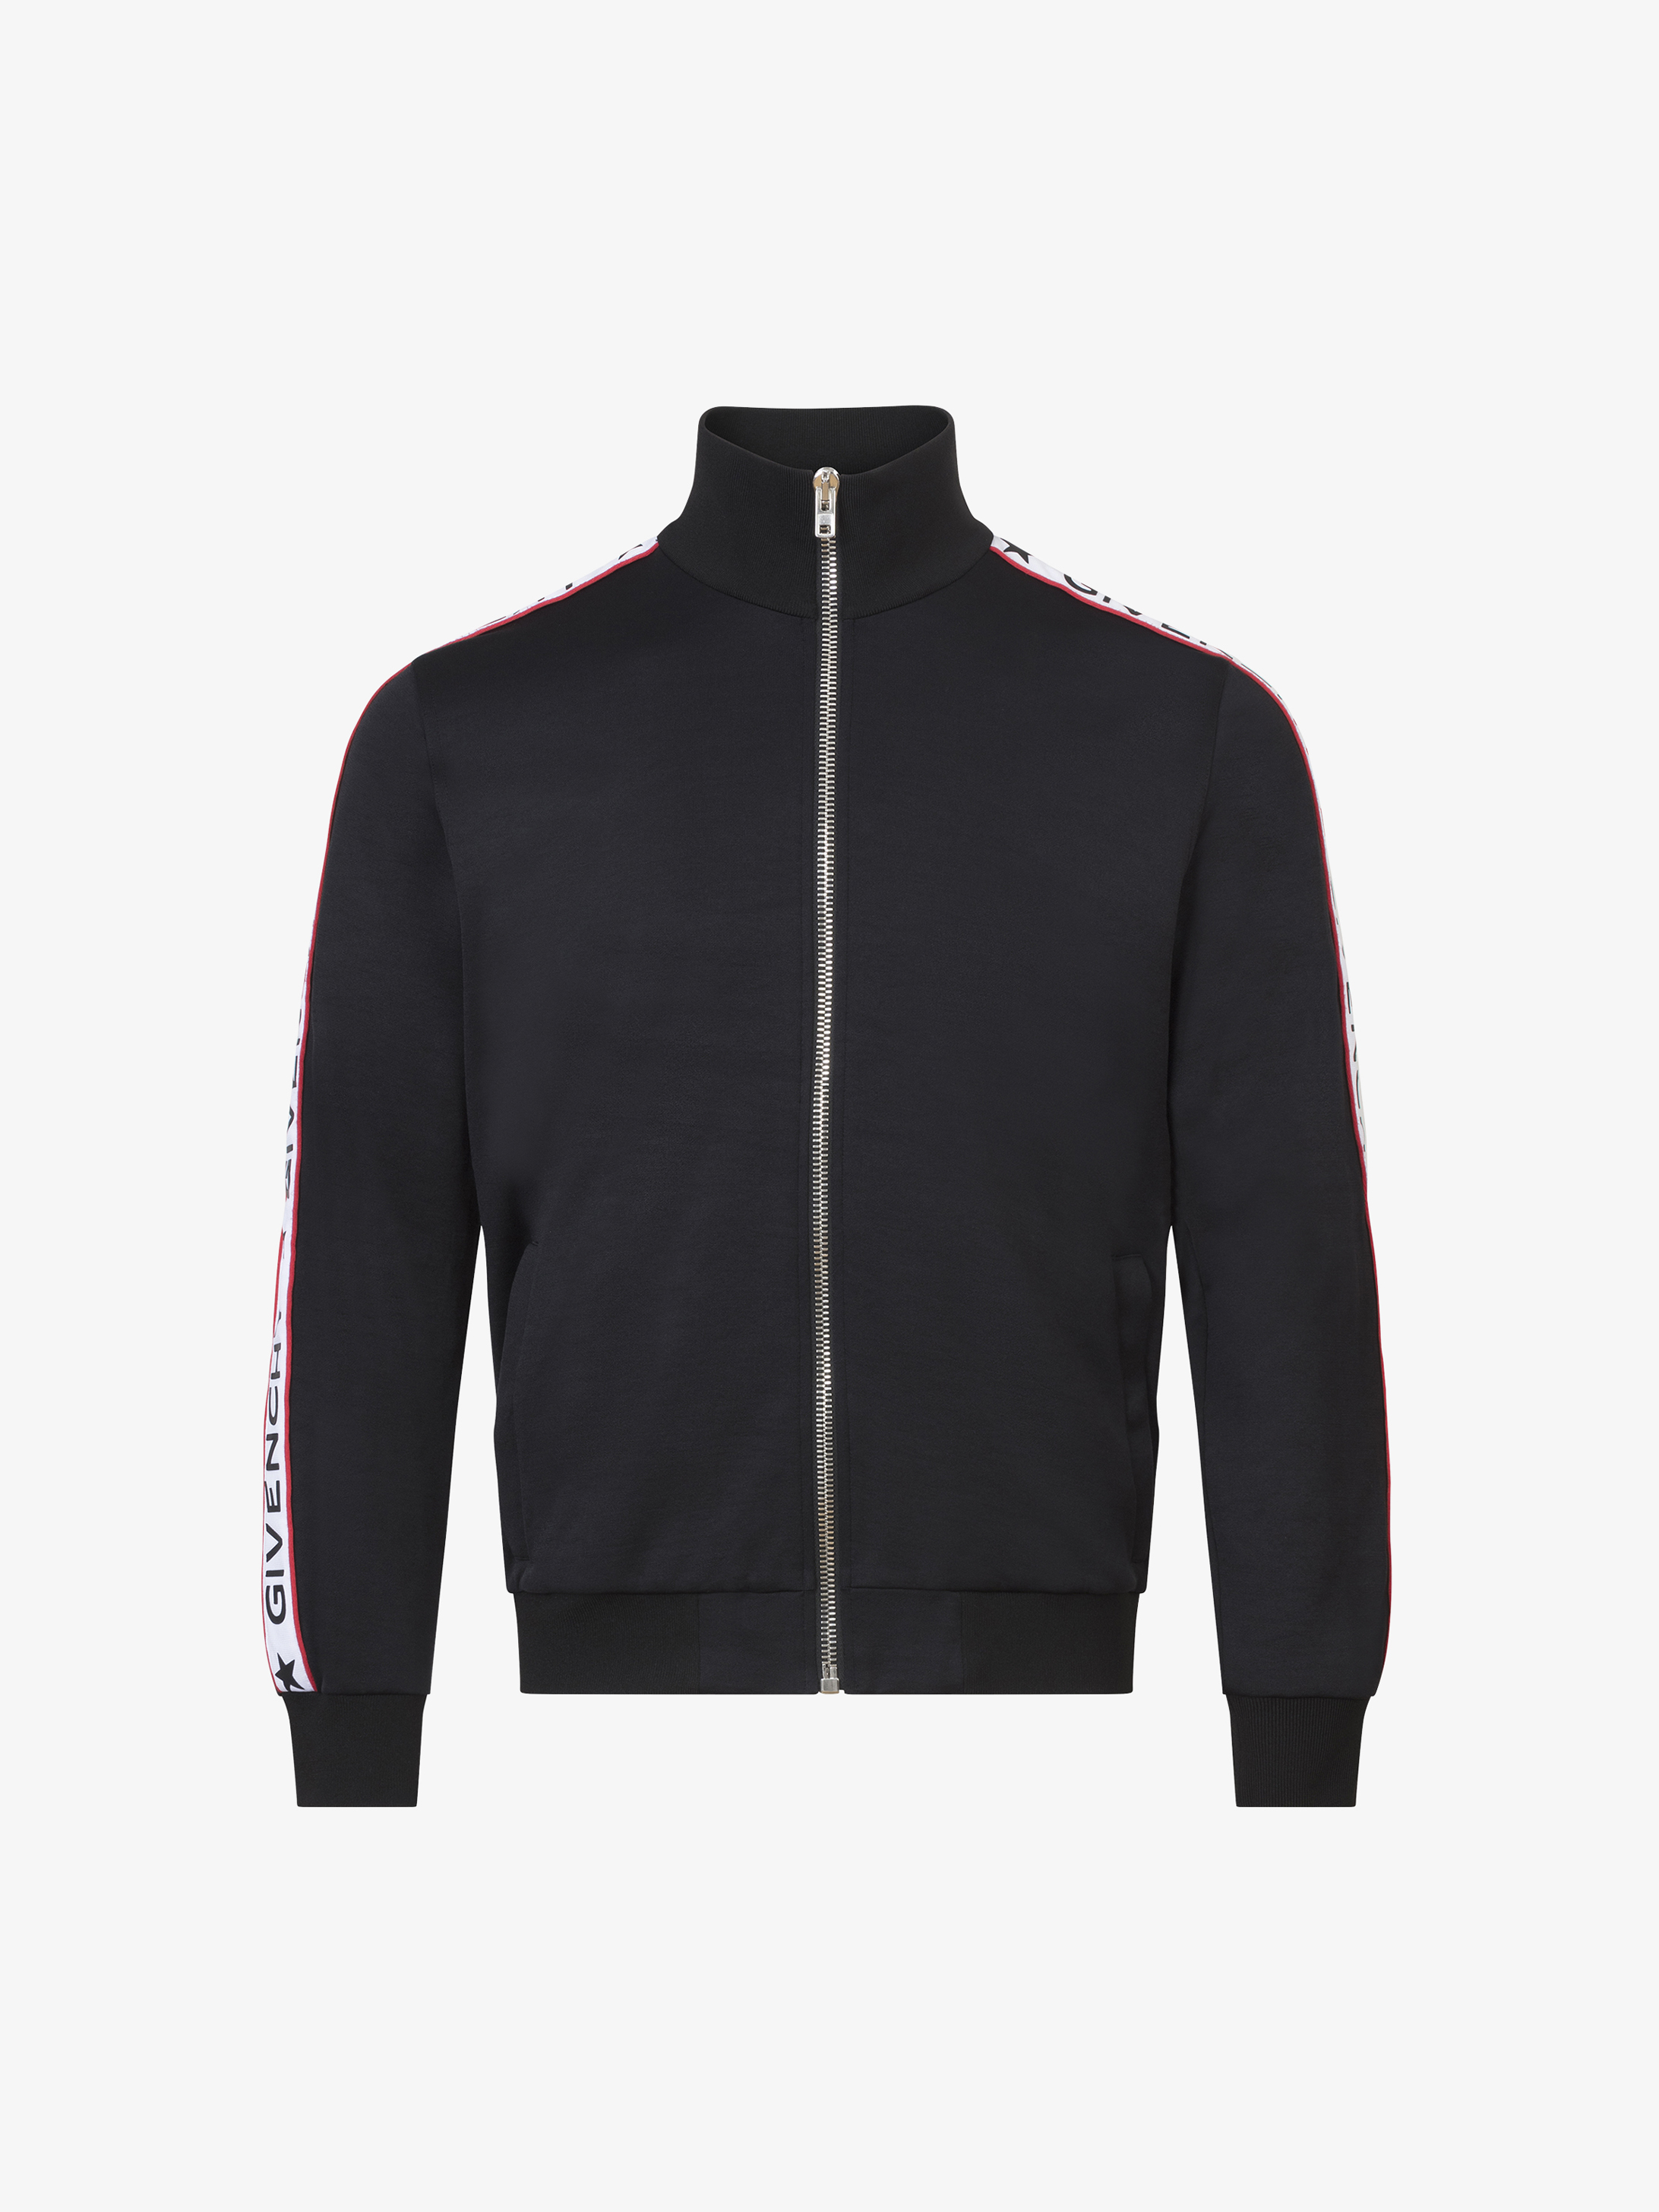 Givenchy bands zipped jacket | GIVENCHY Paris